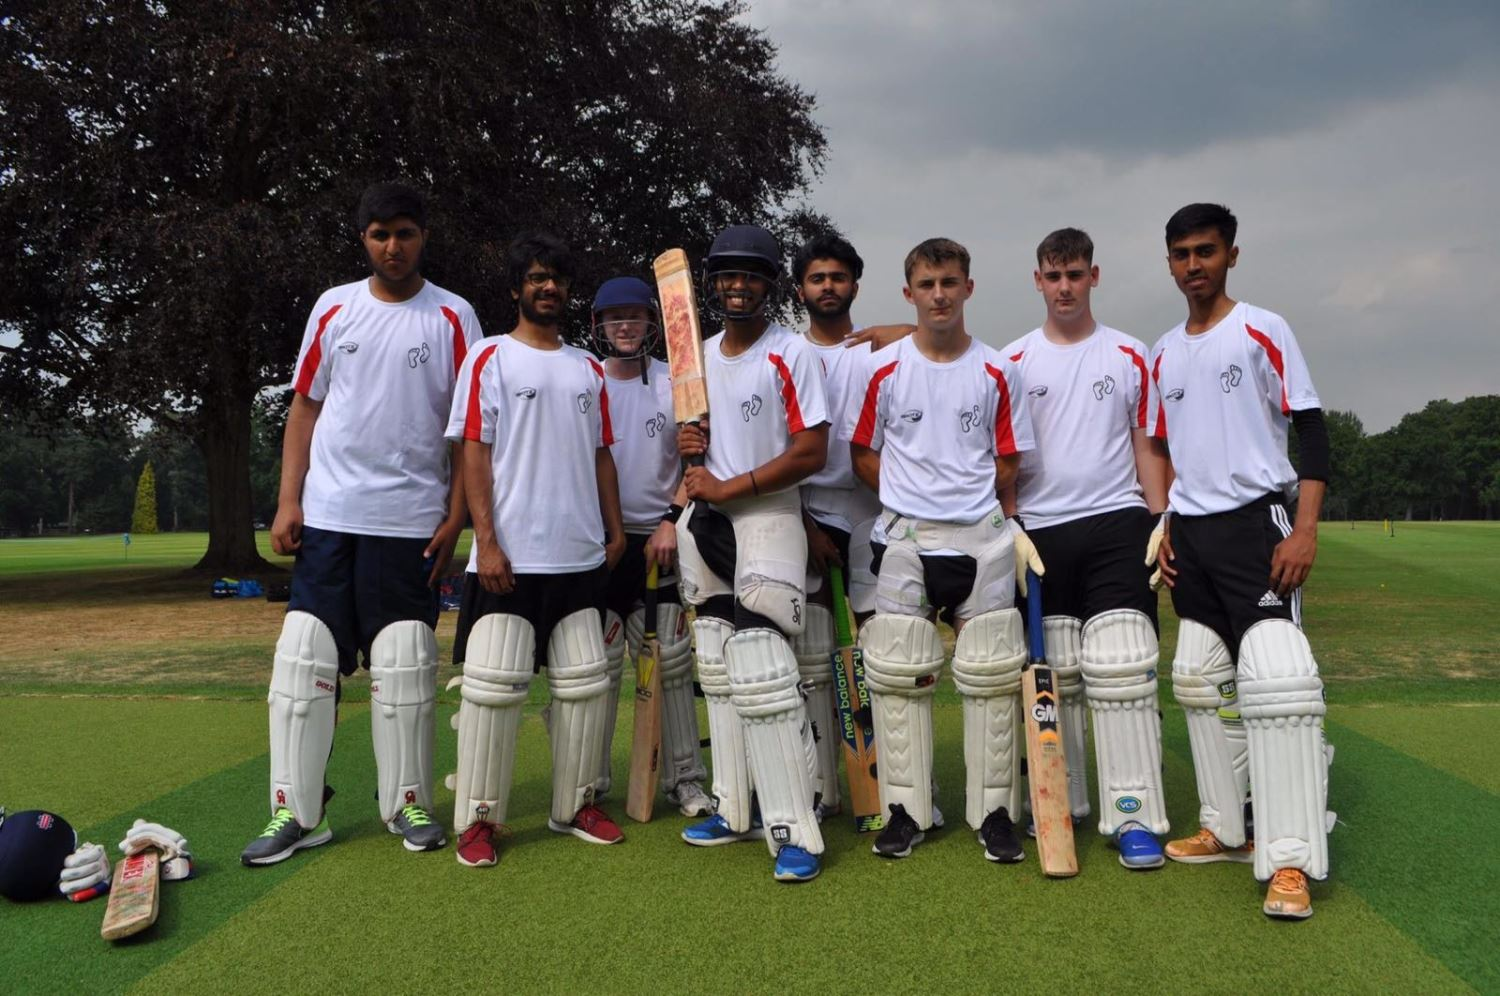 Bristol welcome Cardiff in ECB Inner-City Cup